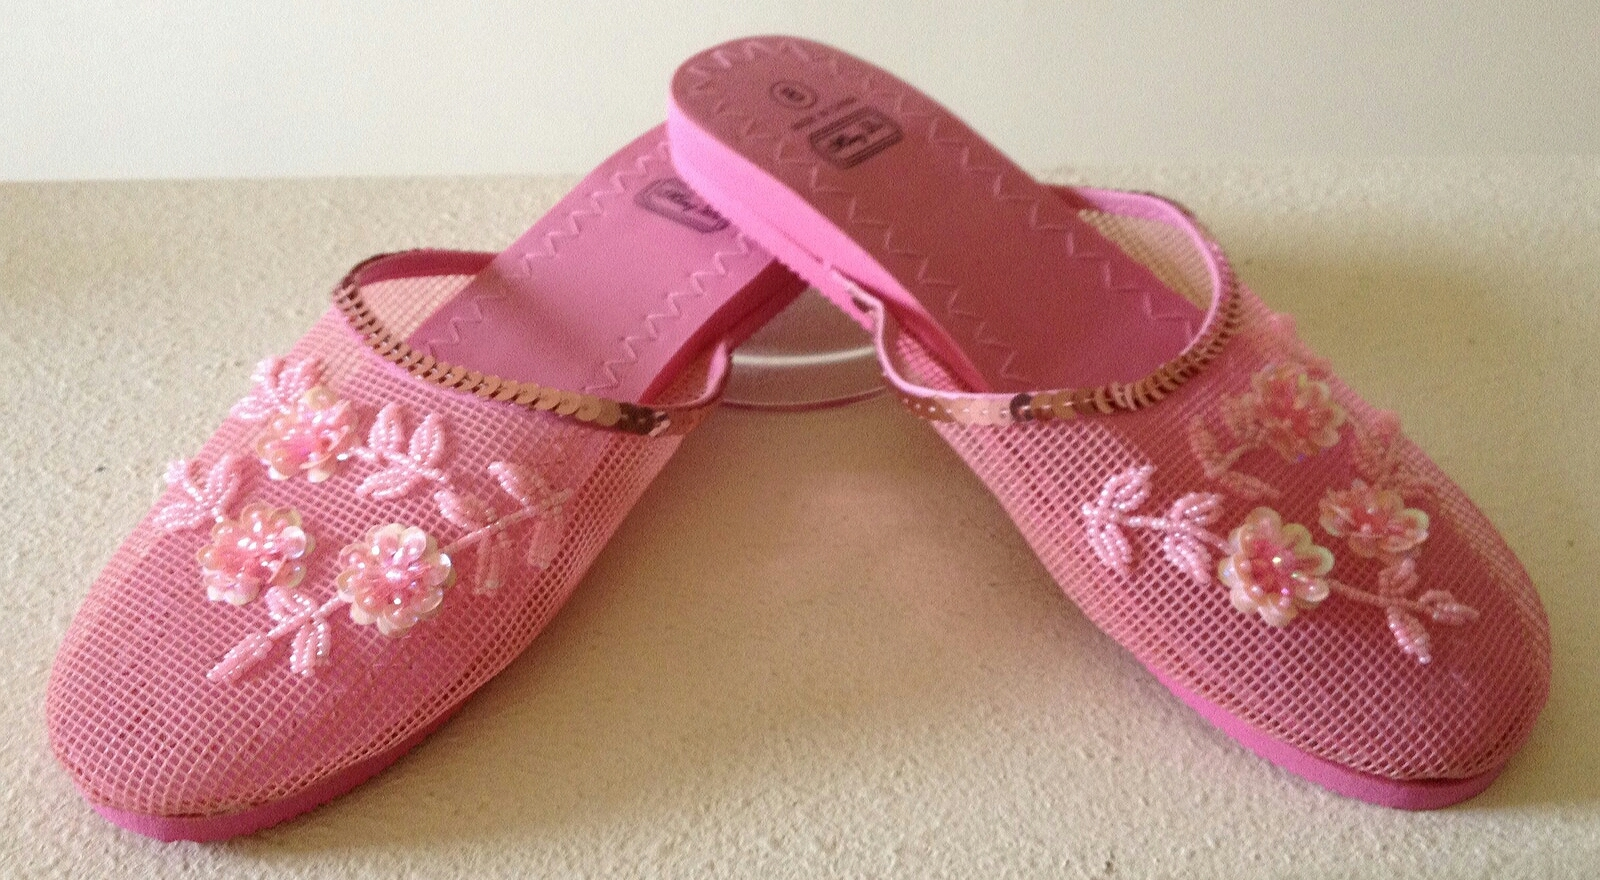 Bubble Gum Pink Floral Beaded Mesh Slippers 8